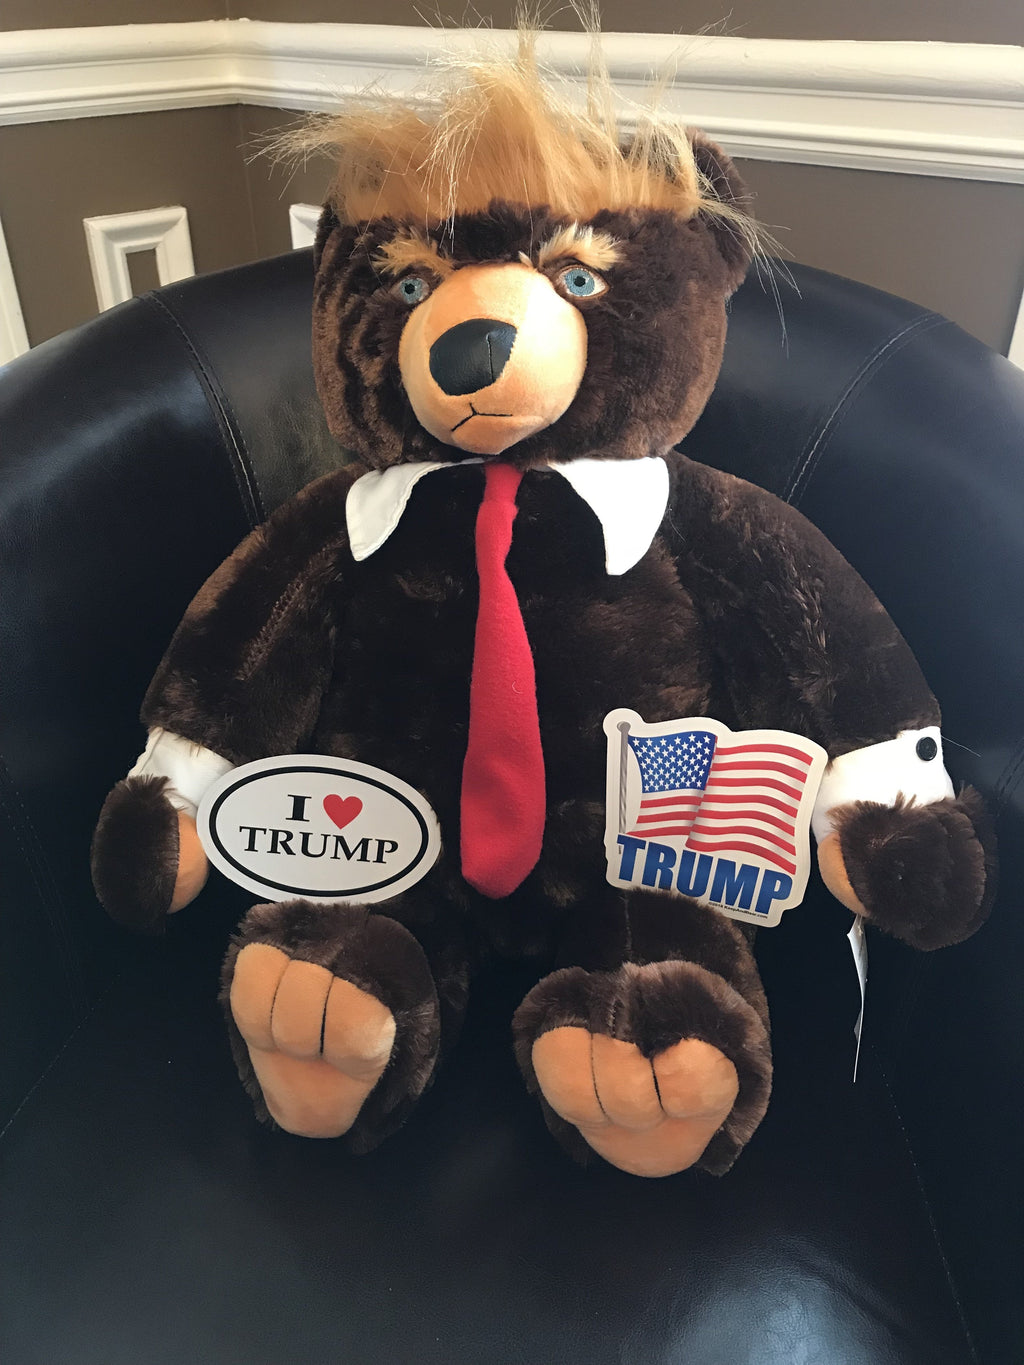 Trumpy Bear + 2 Free Trump Bumper Stickers!